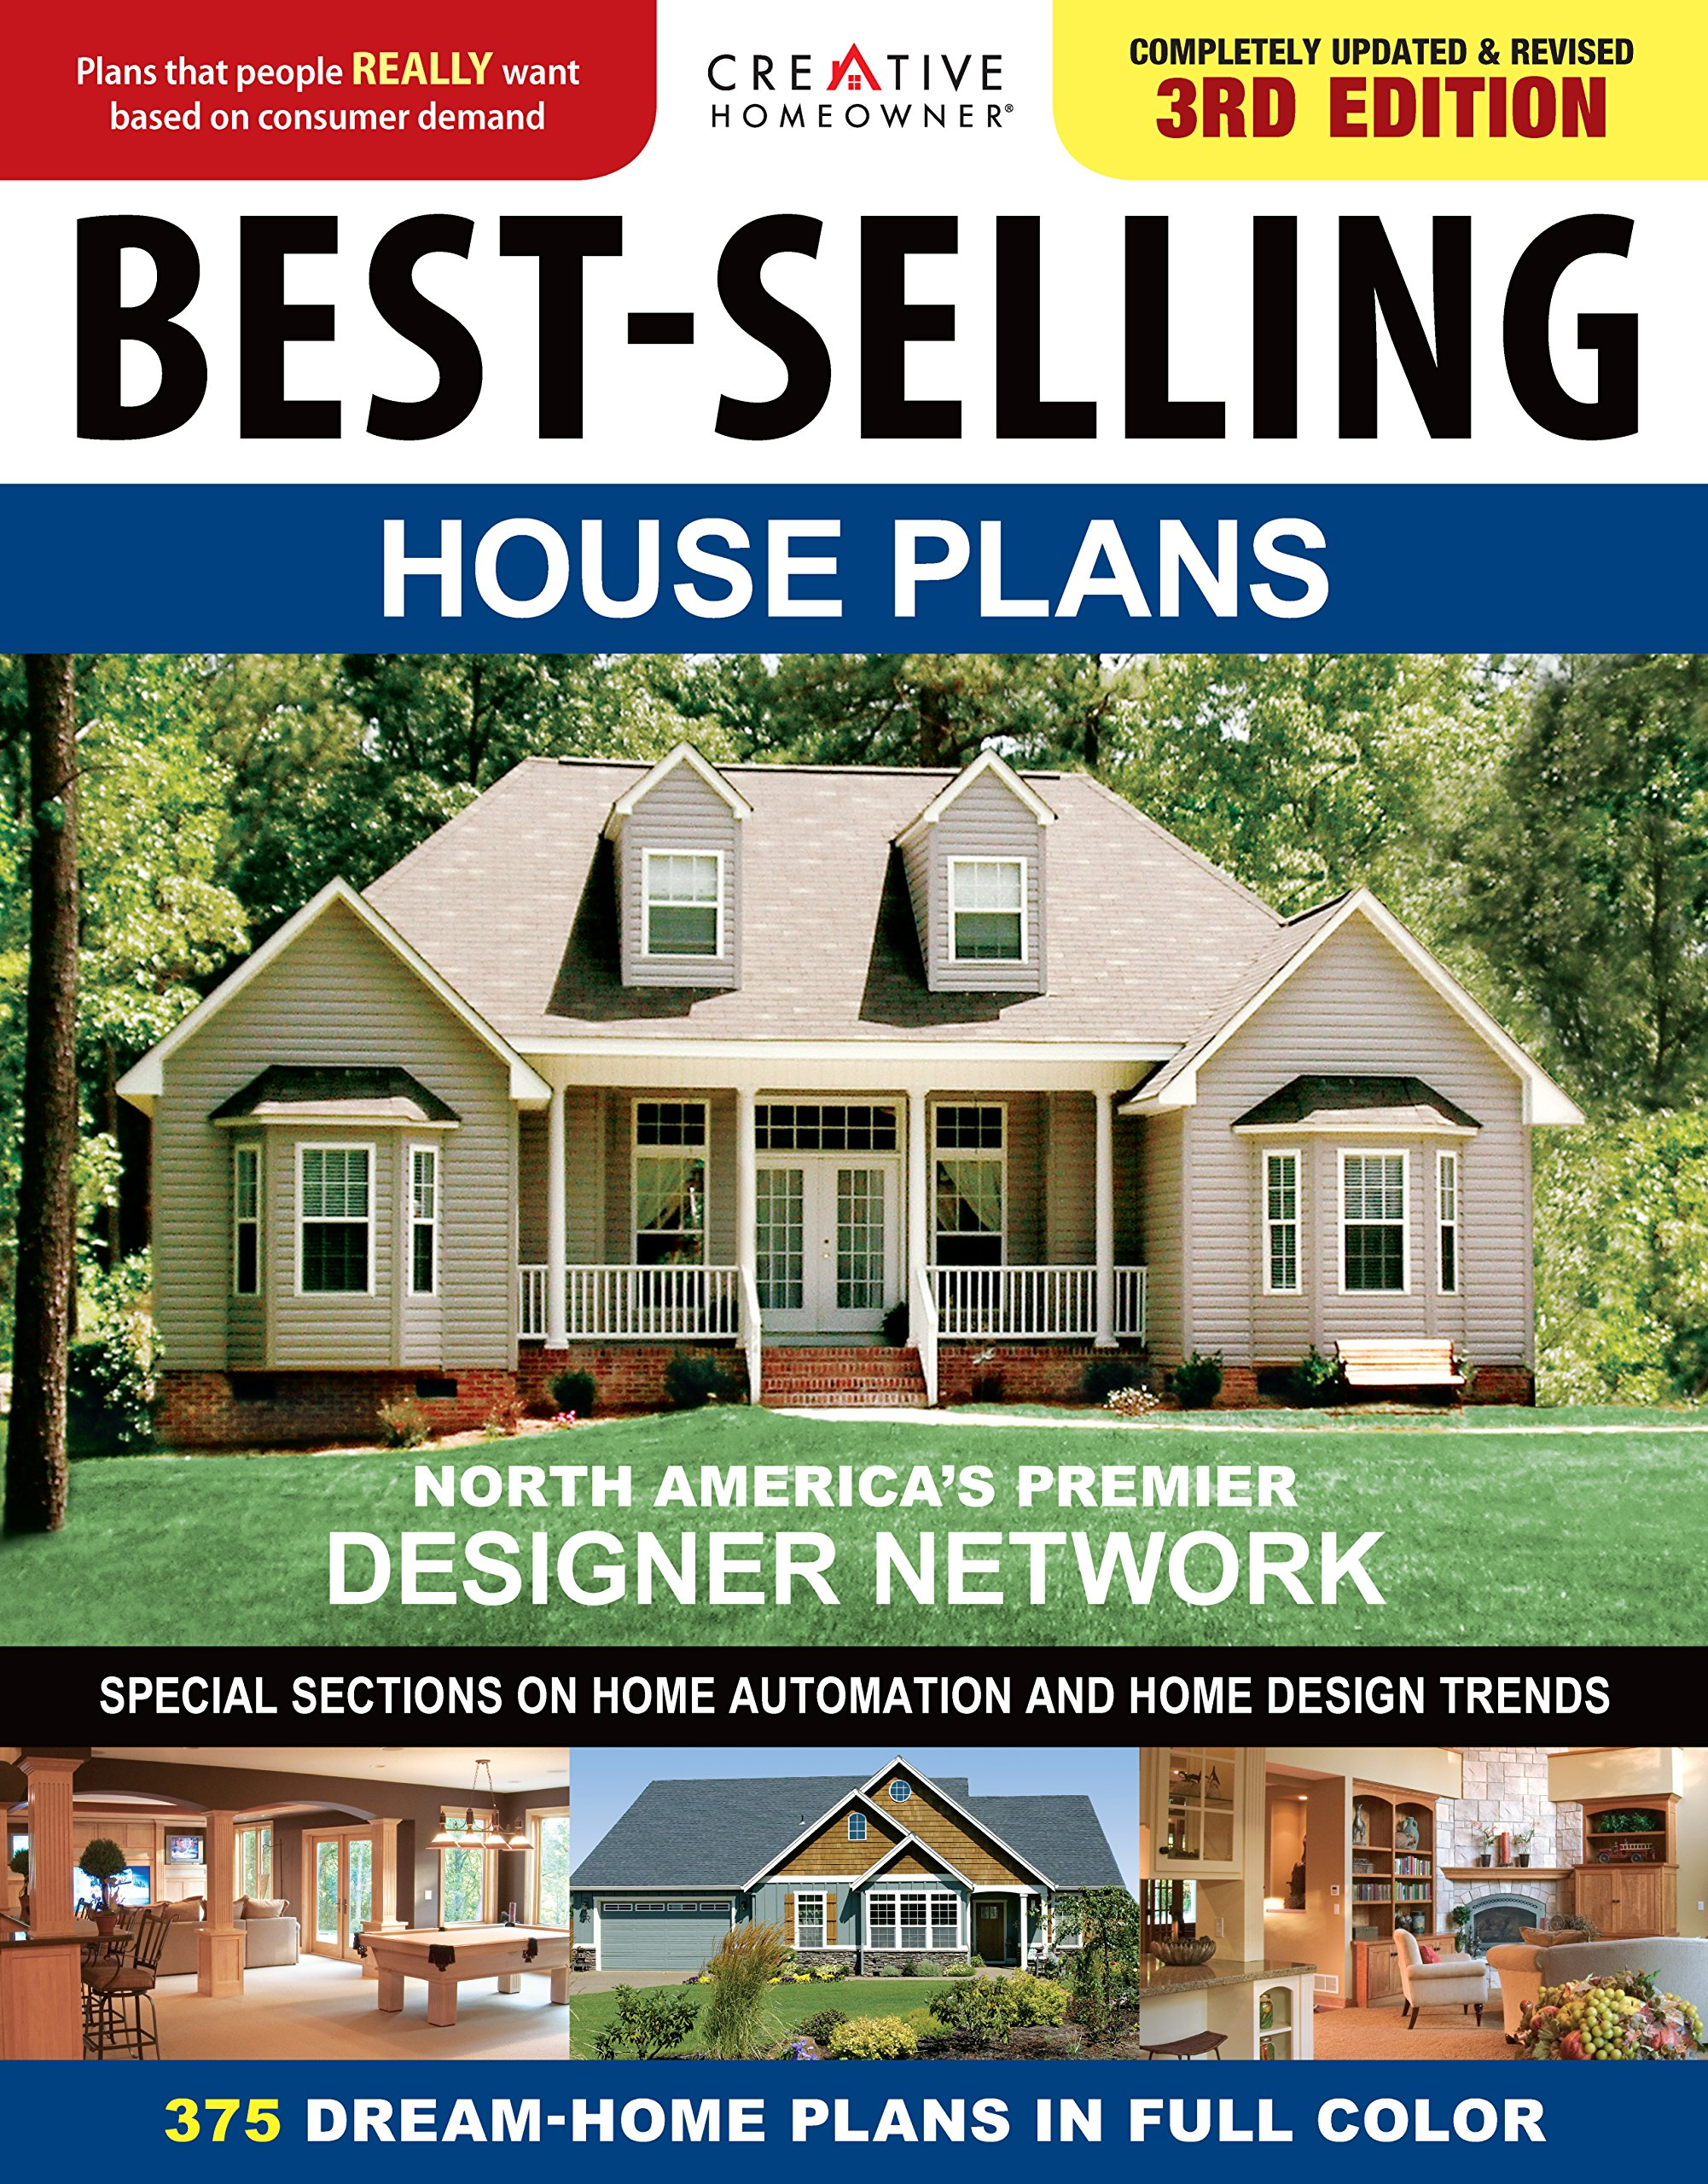 Best-Selling House Plans, Completely Updated & Revised 3rd Edition (Creative  Homeowner) 375 Dream-Home Plans in Full Color; Special Sections on Home ...